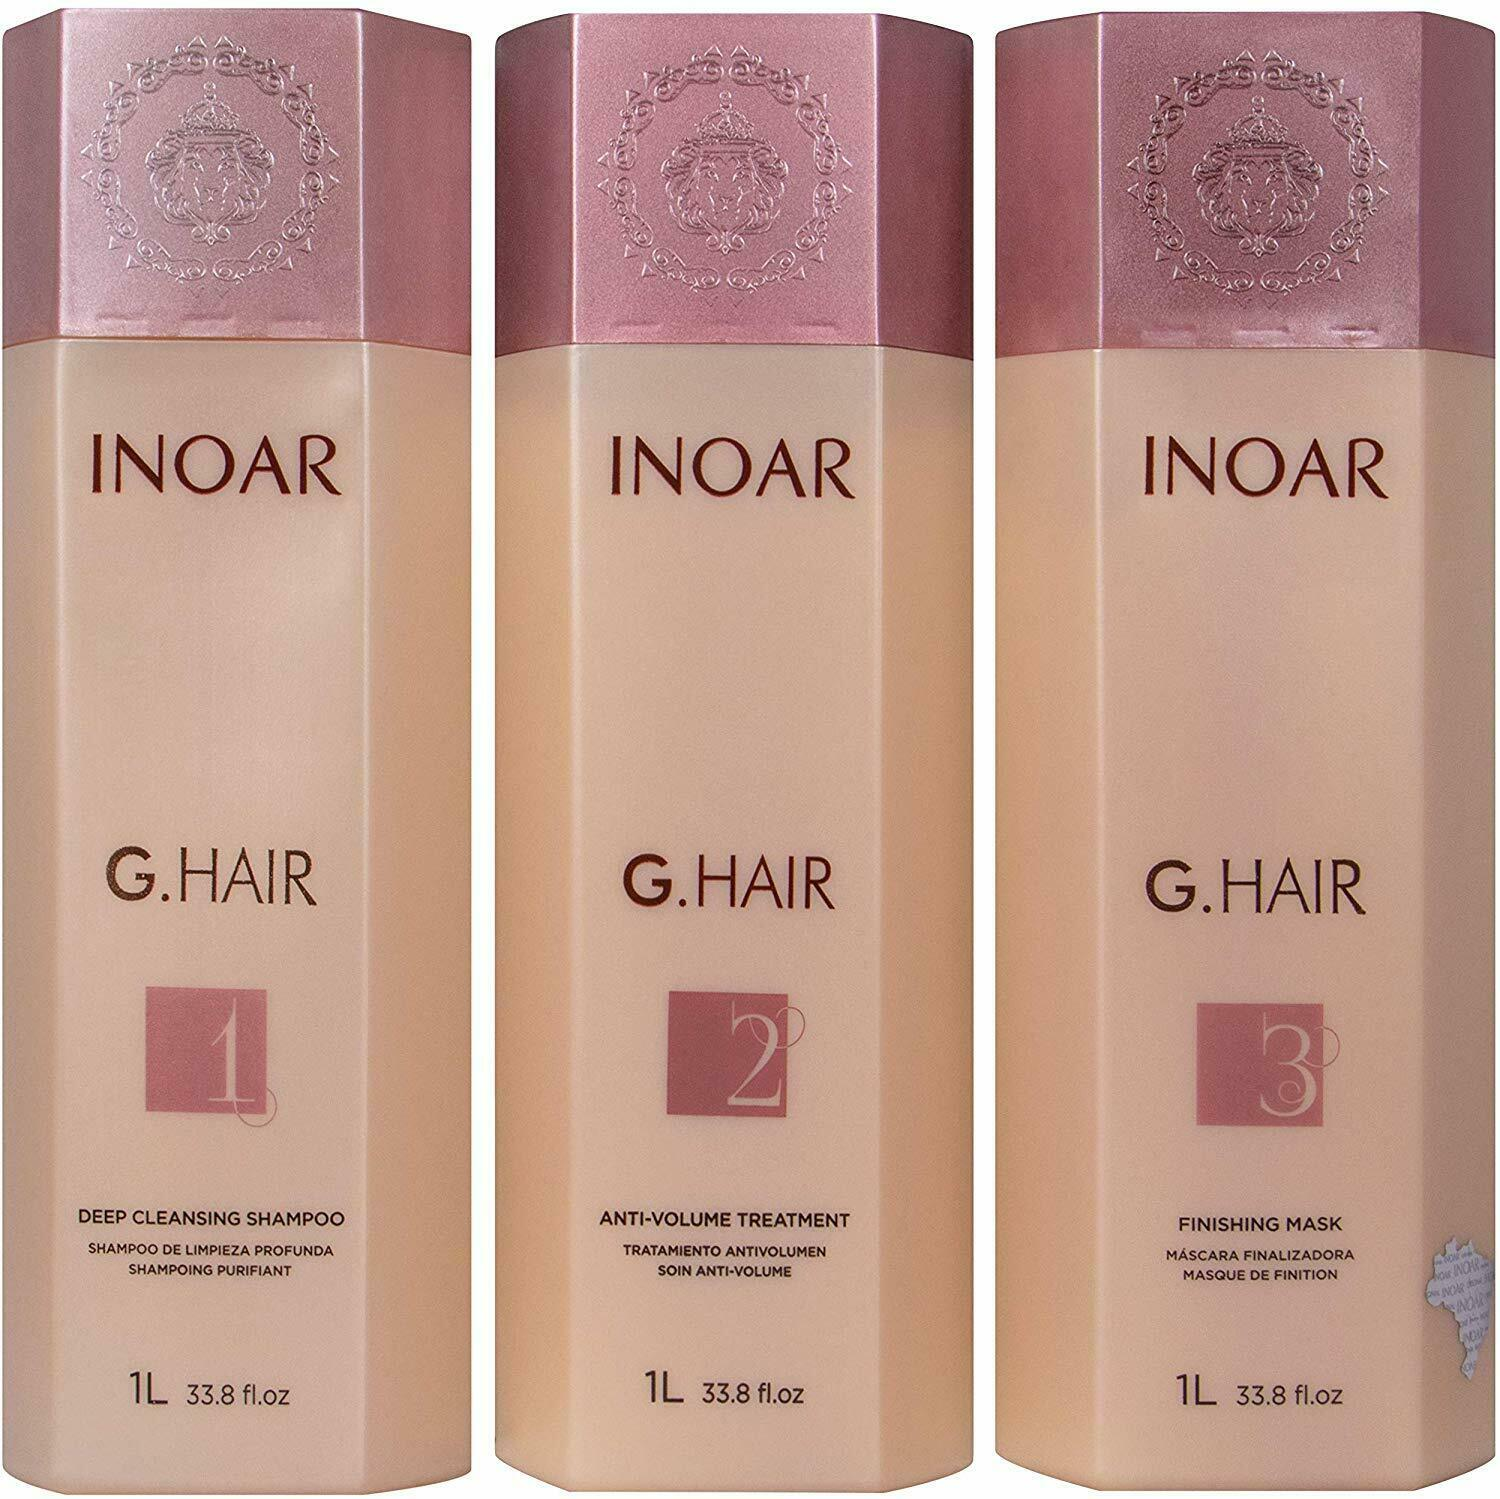 Inoar G Hair Brazilian Keratin Treatment Blow Dry Hair Straightening Full Kit 3 X 250ml For Sale Online Ebay